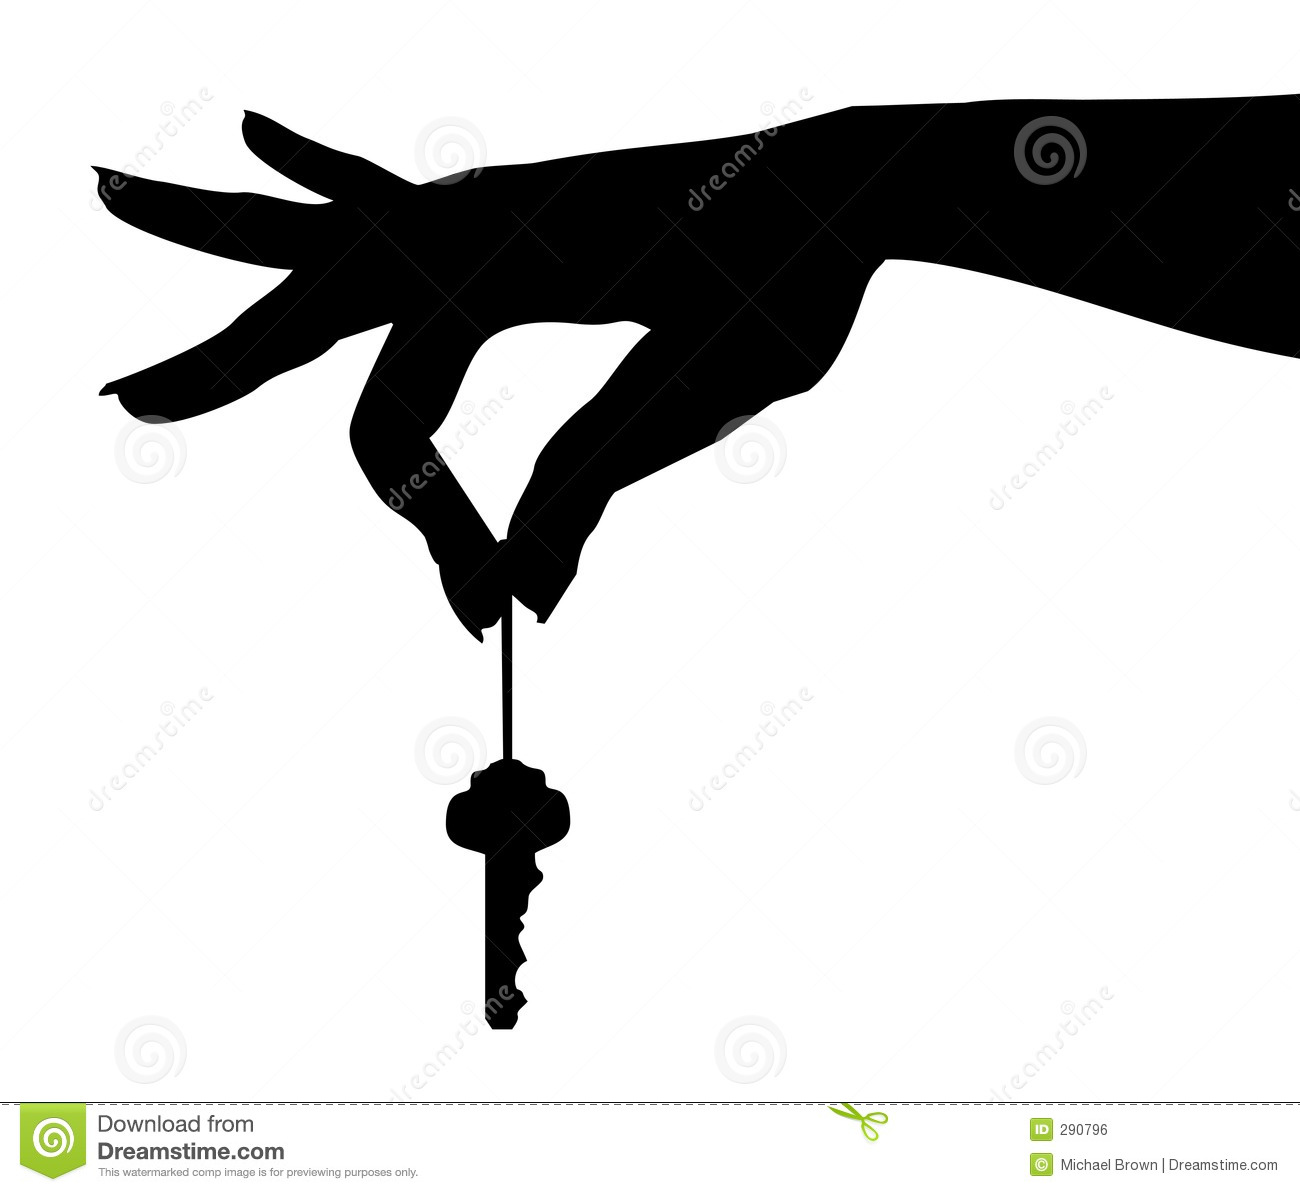 woman's hand dangling a key -clipping-path for removing key so ...